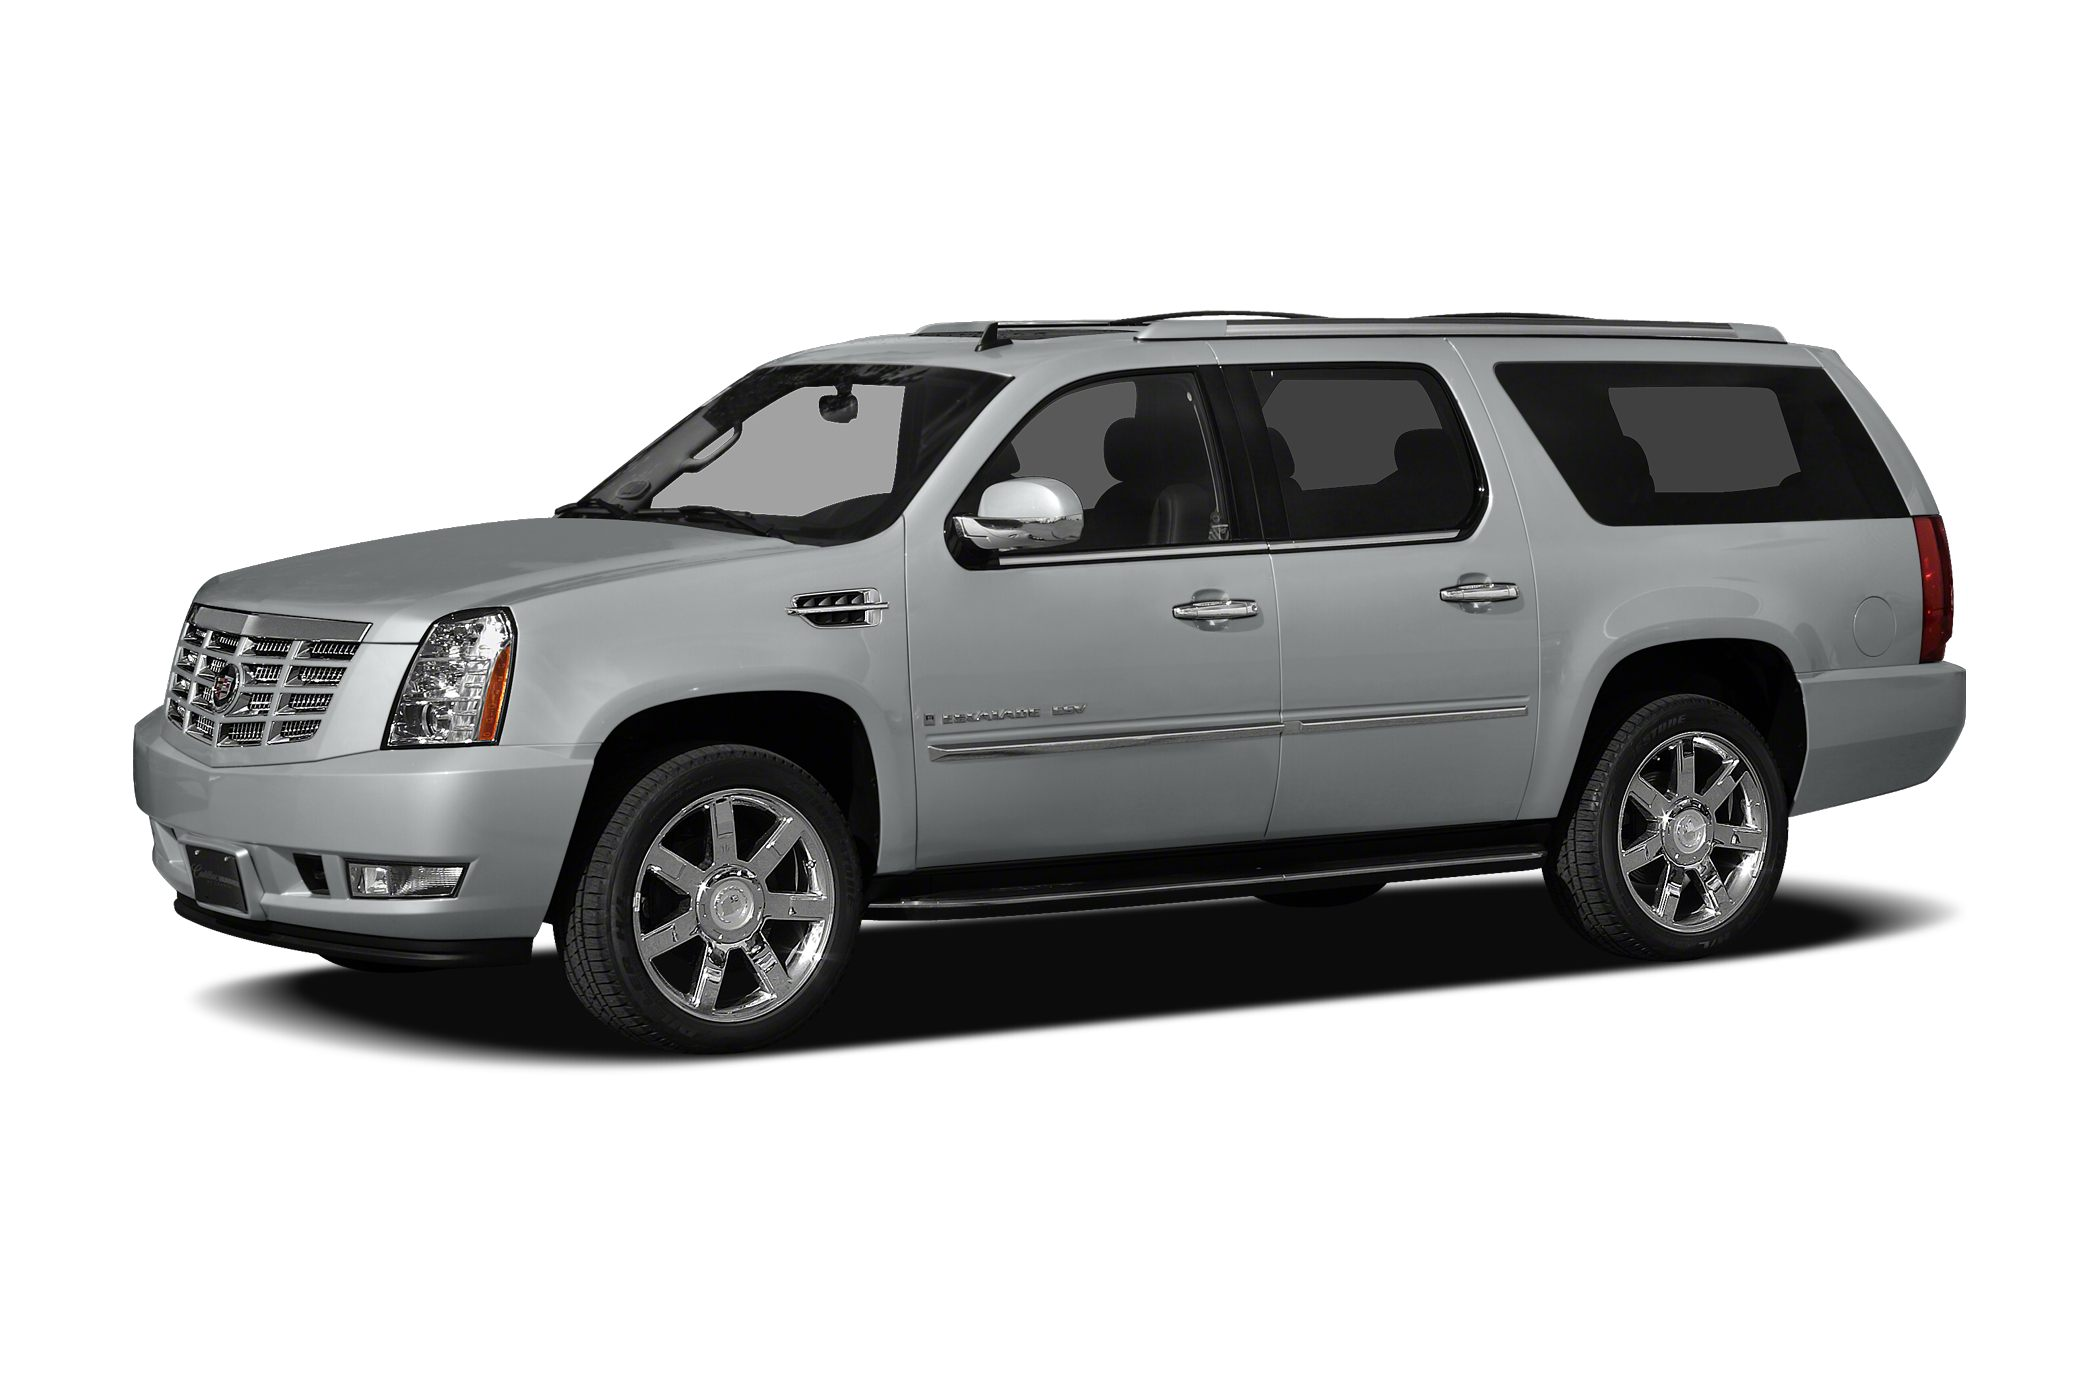 2012 Cadillac Escalade ESV Platinum Edition SUV for sale in Pineville for $49,981 with 44,228 miles